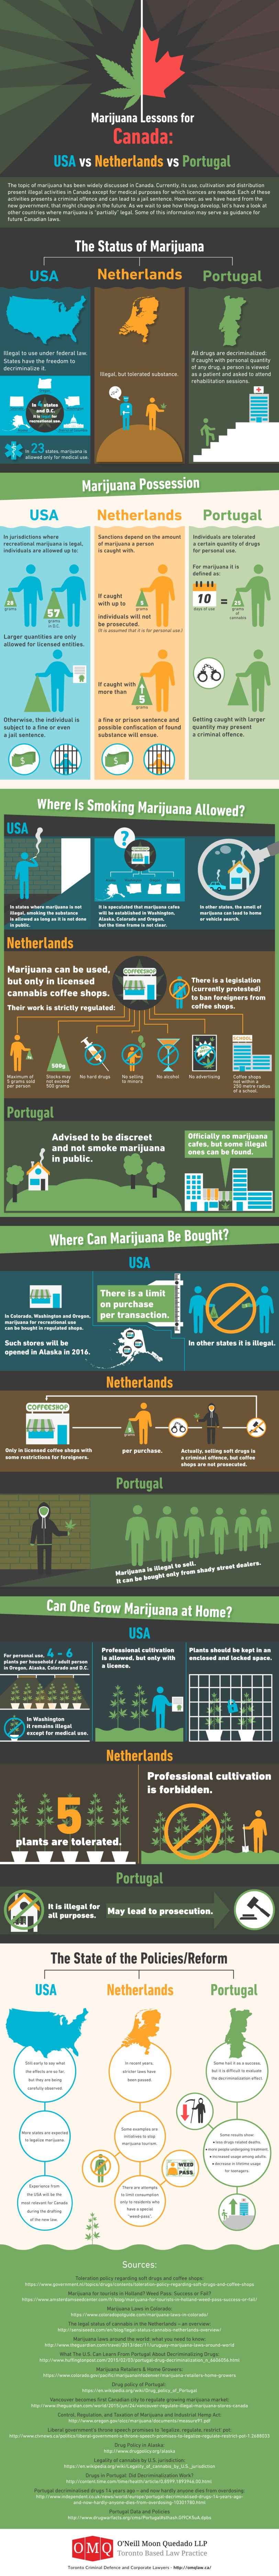 Marijuana Lessons for Canada: USA vs Portugal vs Netherlands